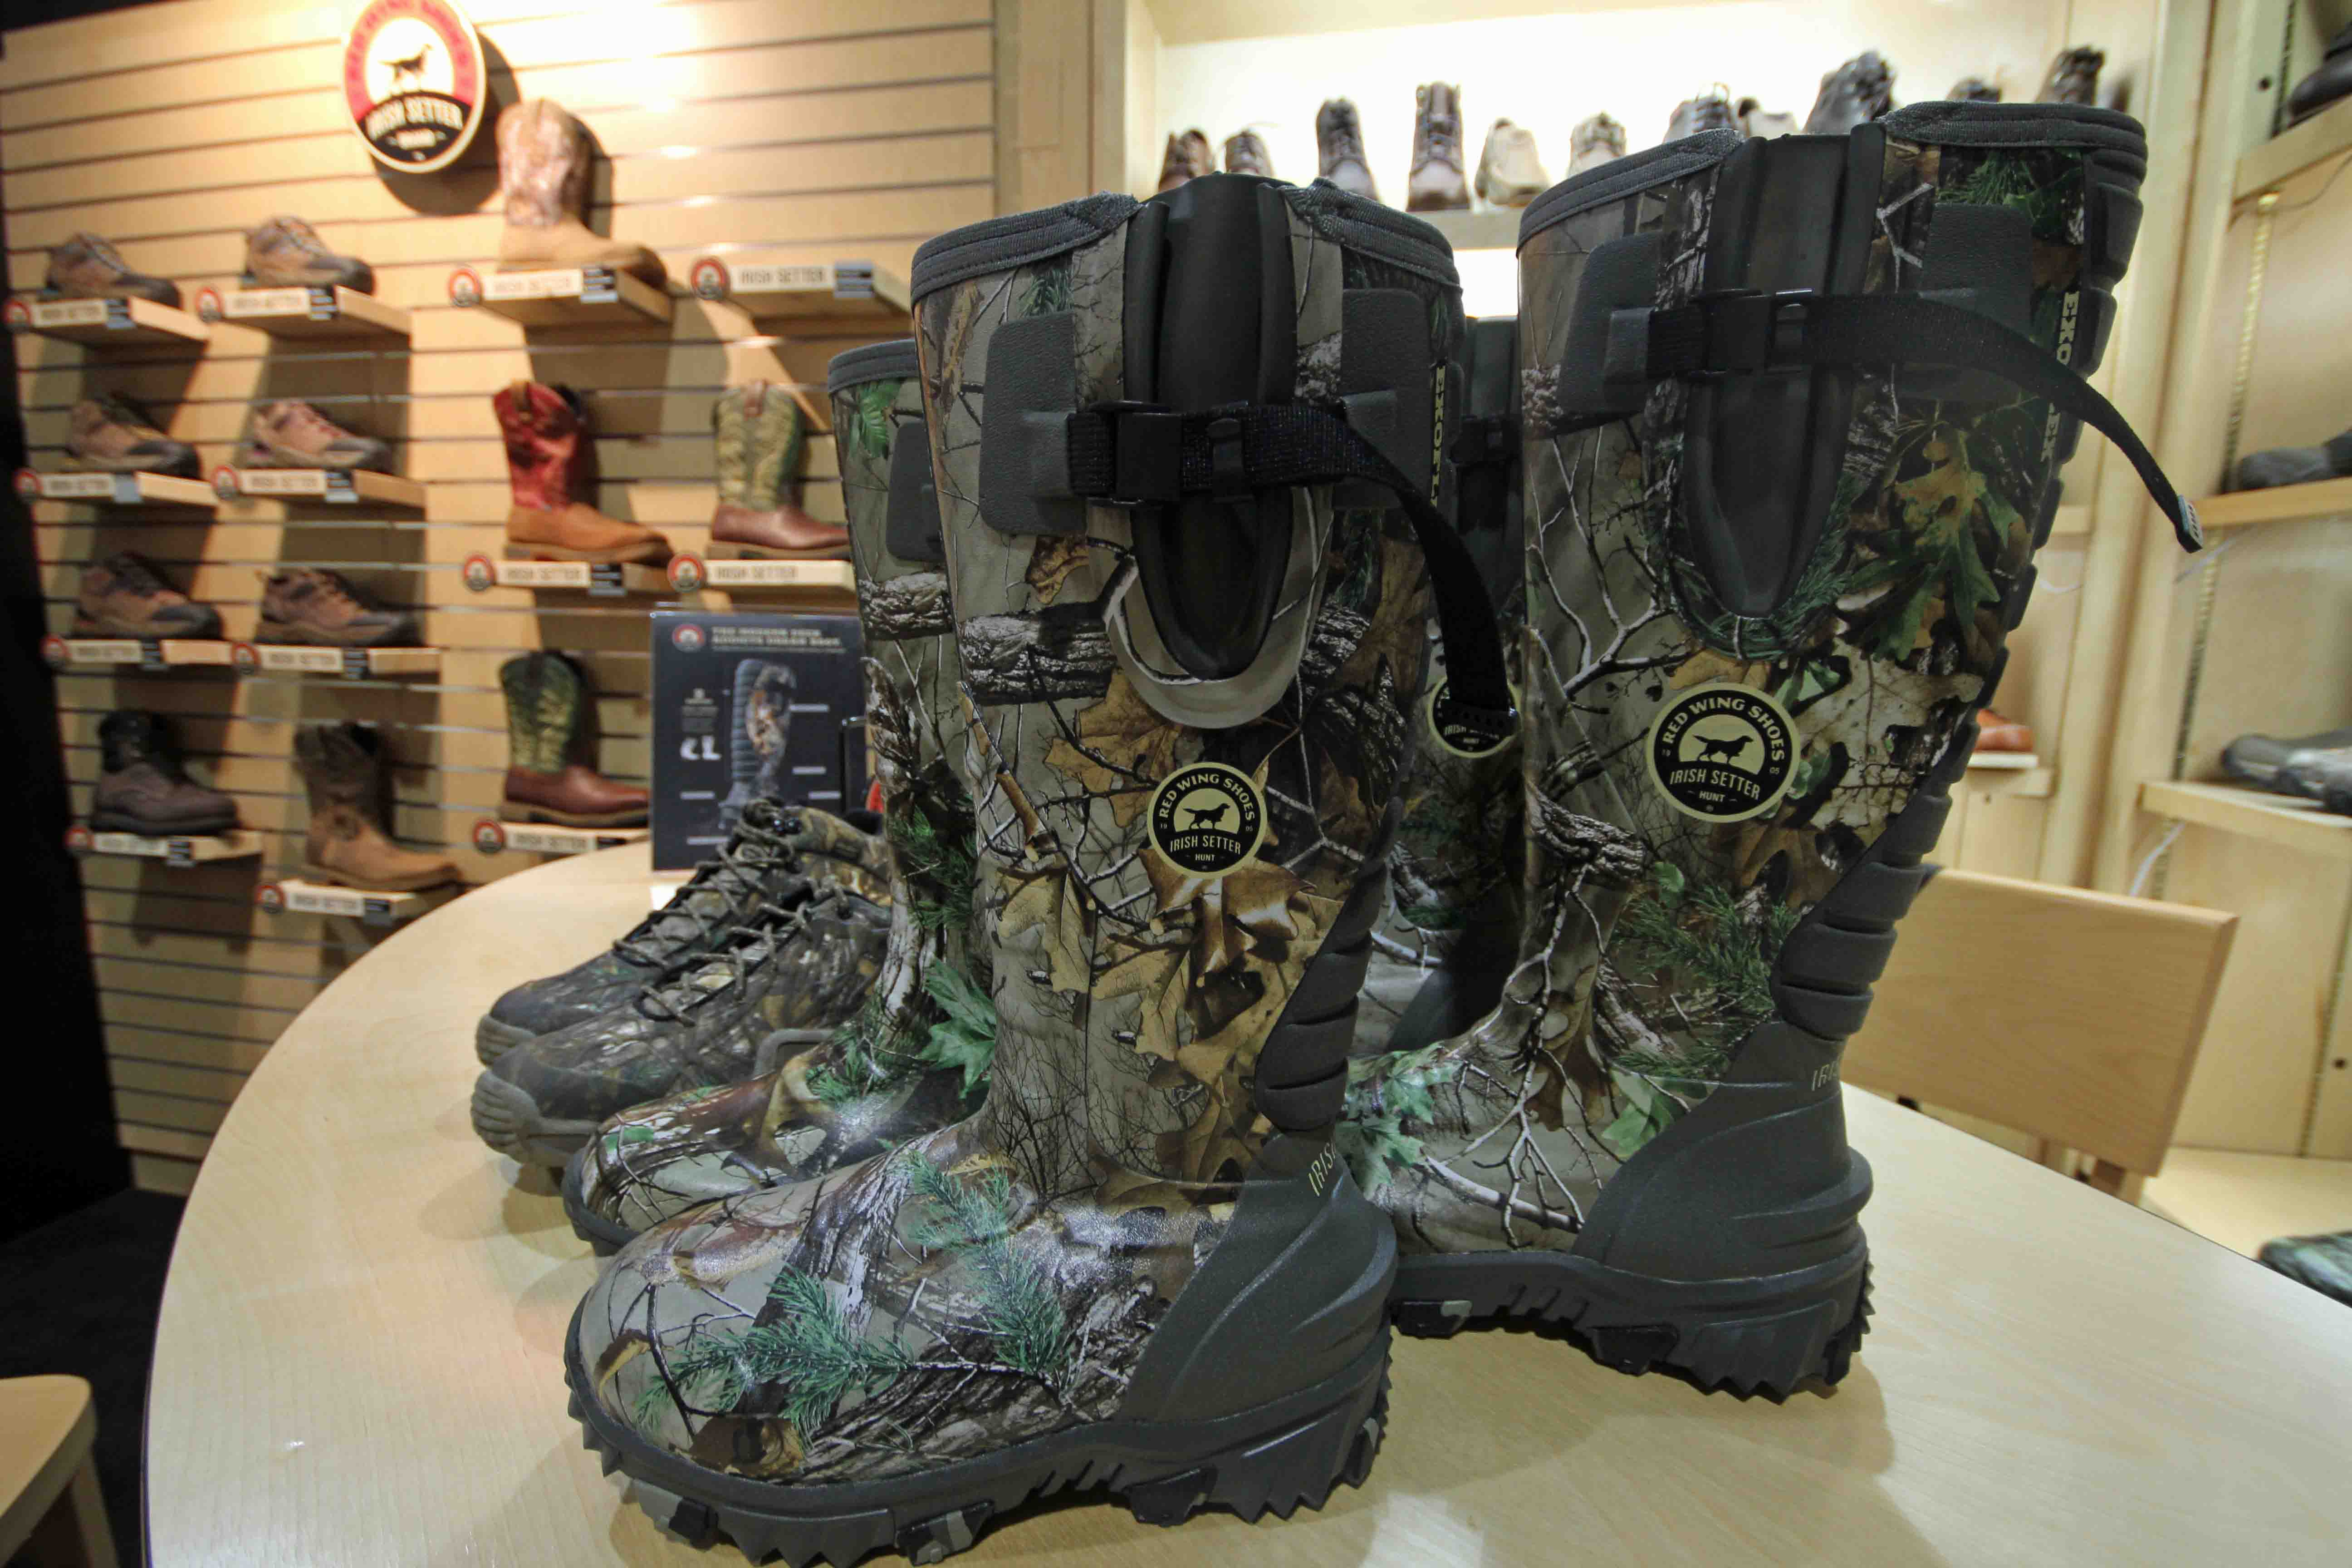 b158539e9de New Hunting Boots, Clothing, Packs and More from the 2015 SHOT Show ...